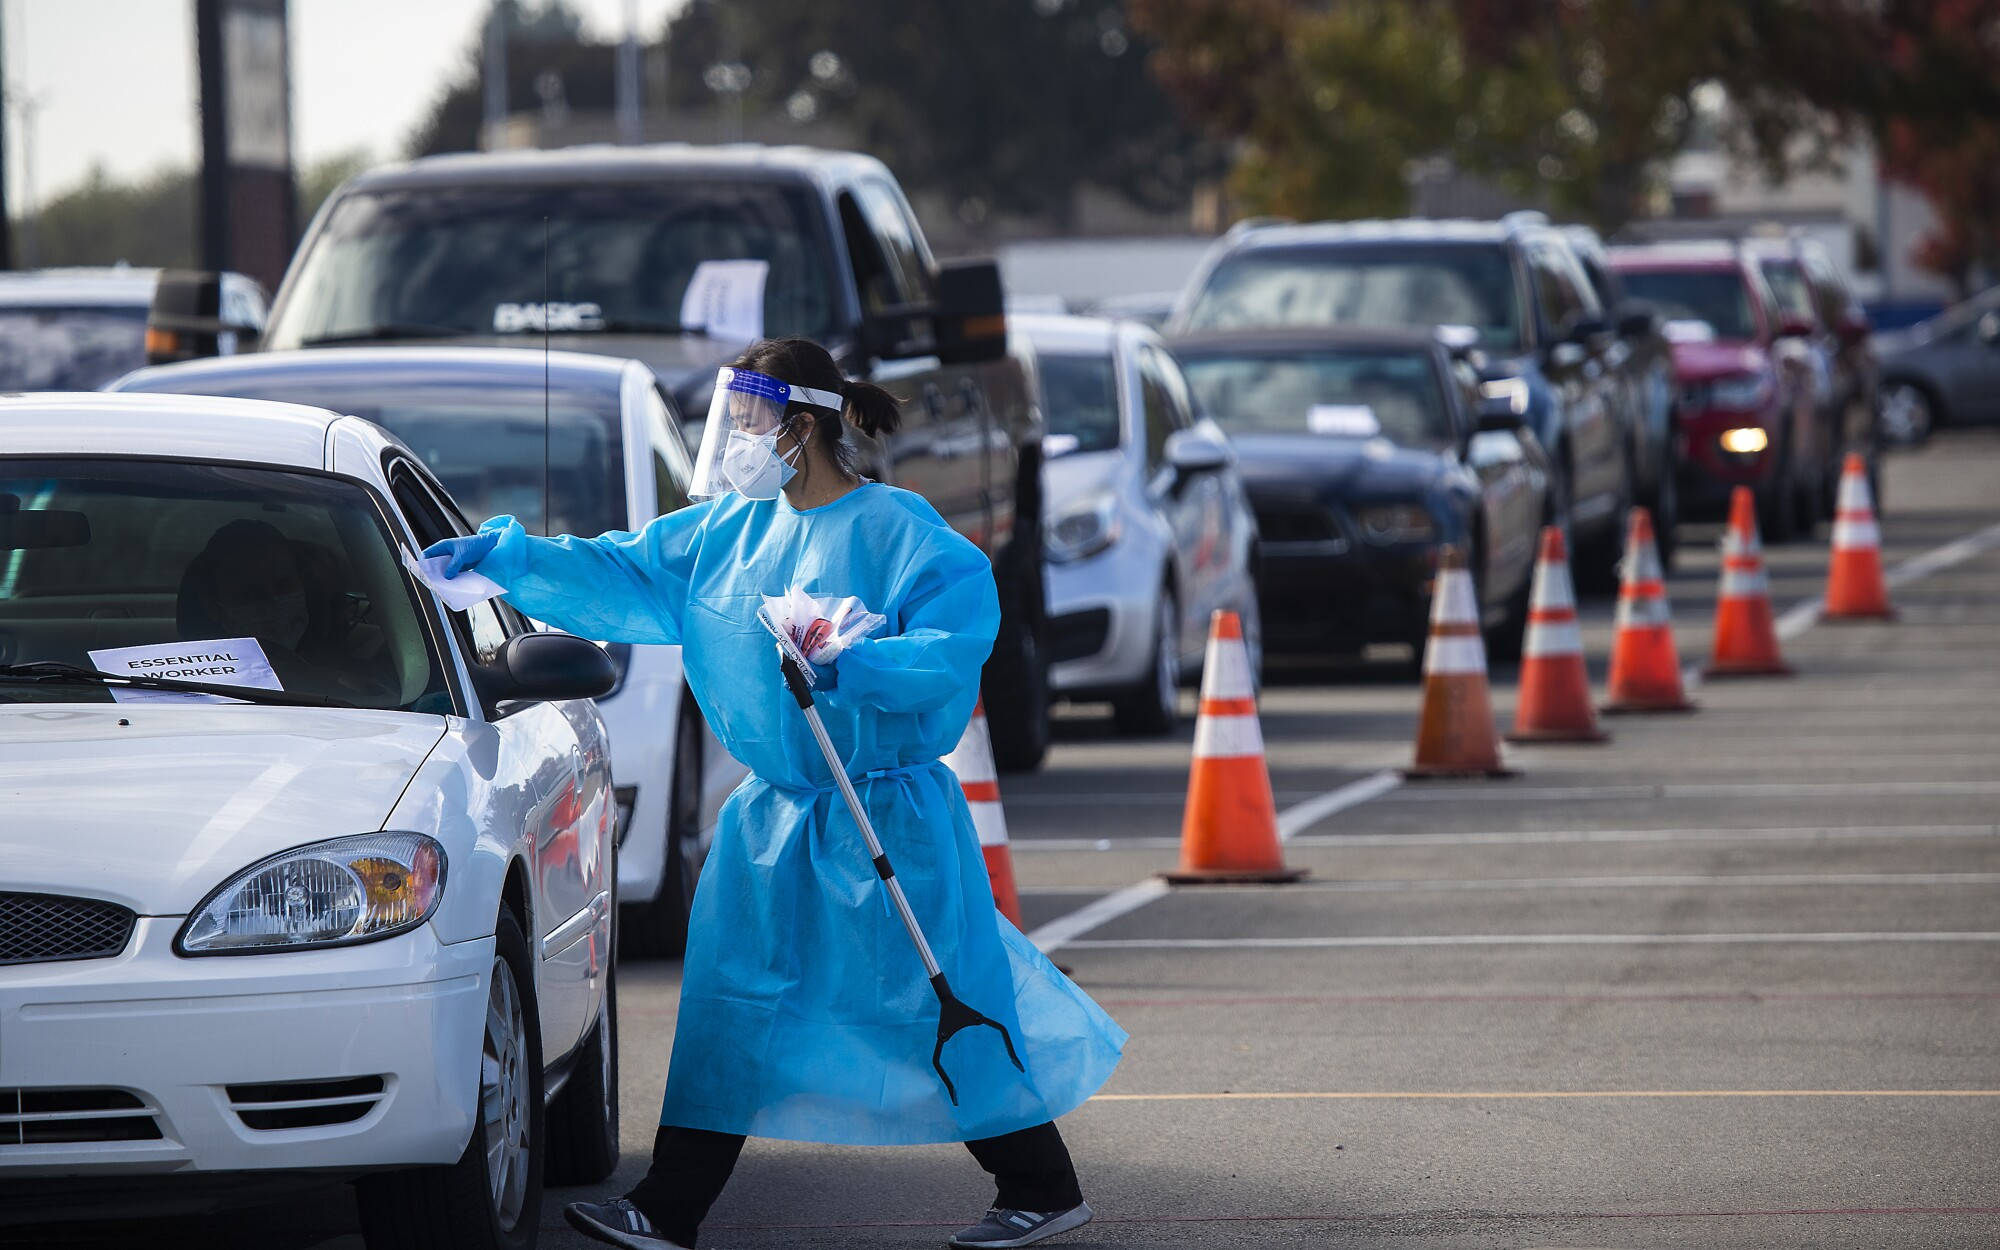 A healthcare worker conducts coronavirus test at a drive-through site in Costa Mesa.